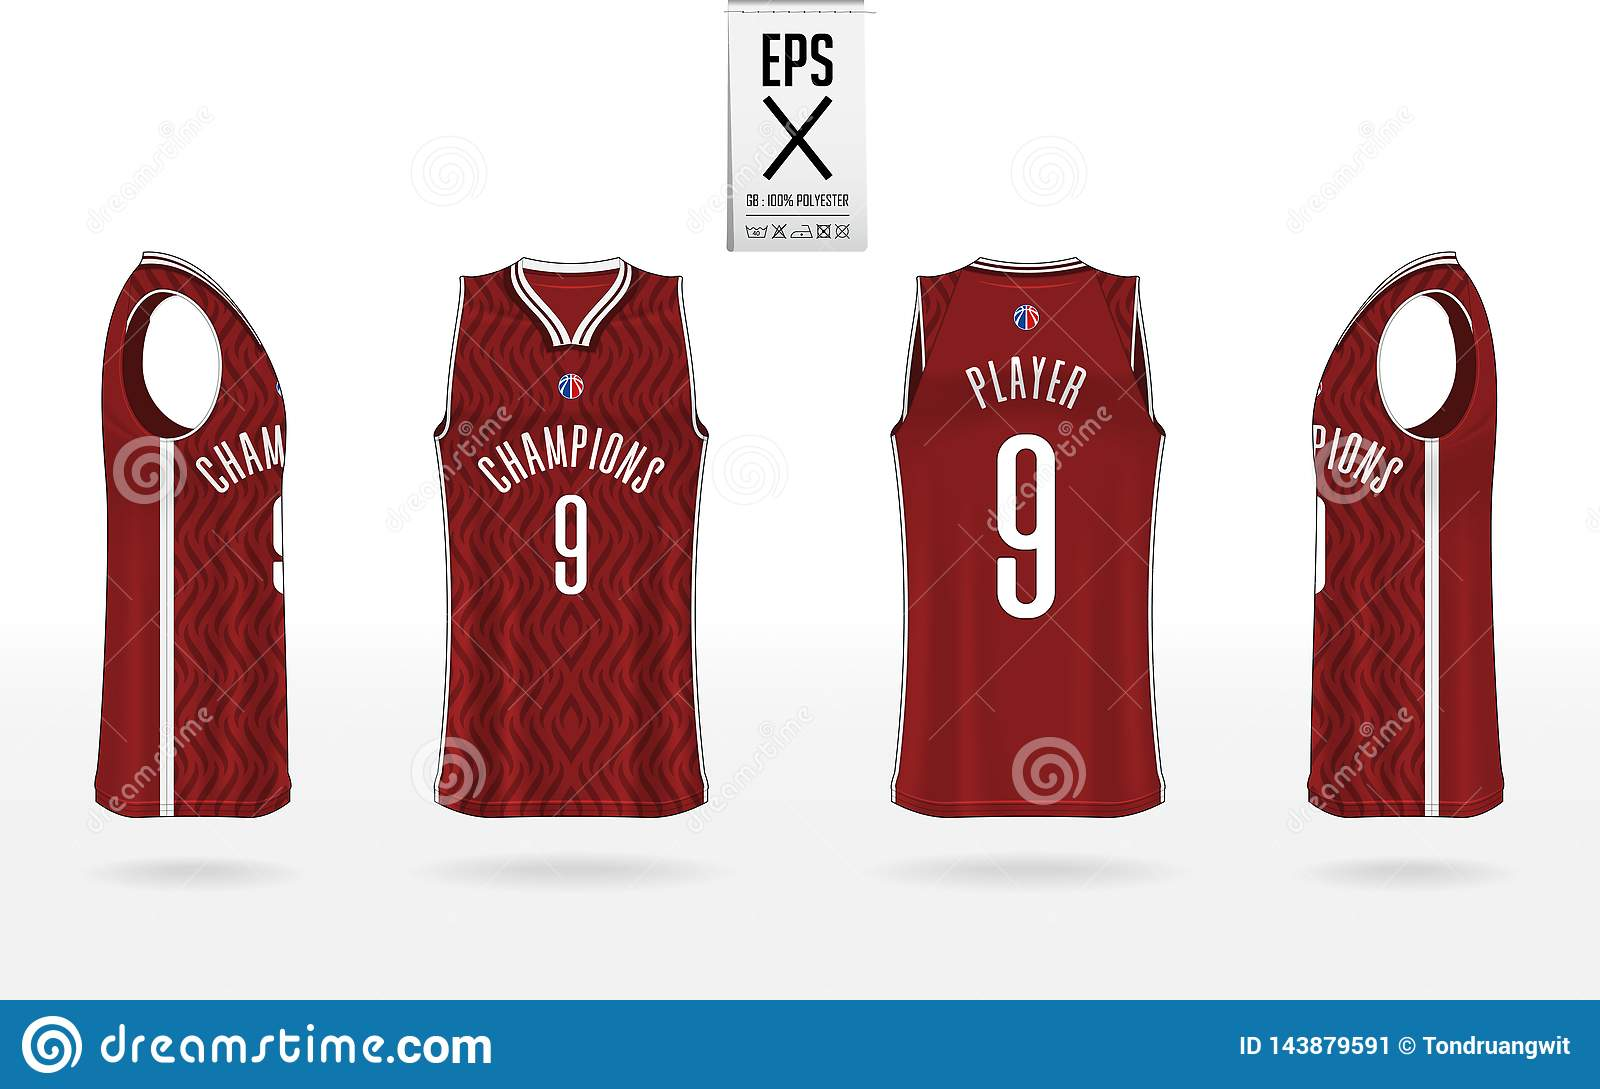 basketball uniform mockup template design for basketball club tank top t shirt mockup for basketball jersey stock vector illustration of player icon 143879591 https www dreamstime com basketball uniform mockup template design club tank top t shirt jersey front view back side vector illustration image143879591